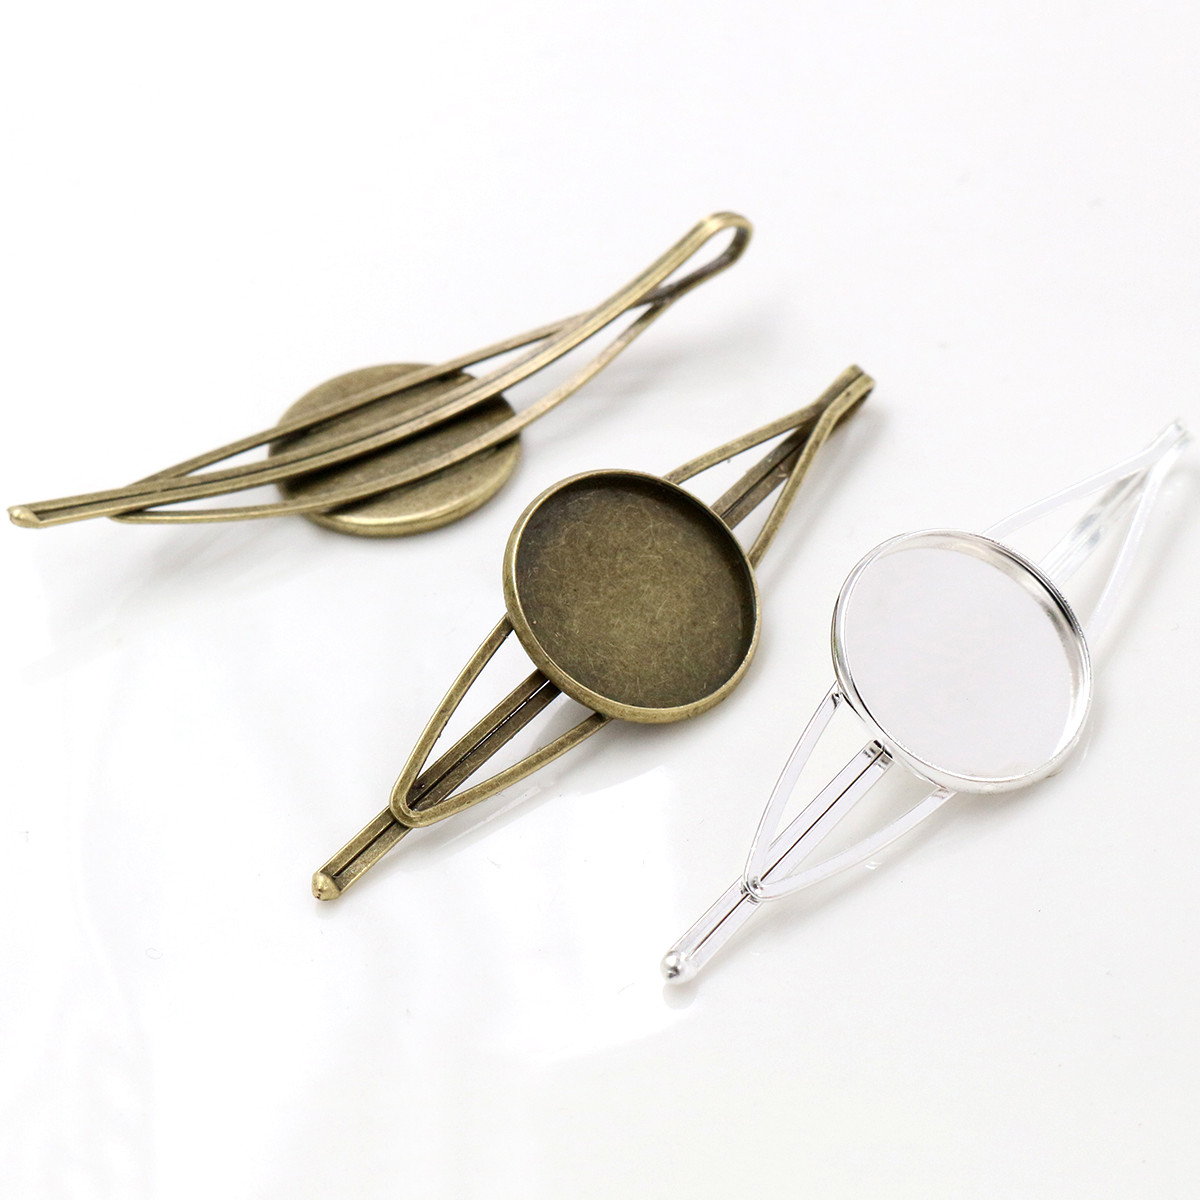 20mm 5pcs High Quality Bronze And Silver Plated Copper Material Hairpin Hair Clips Hairpin Base Setting Cabochon Cameo